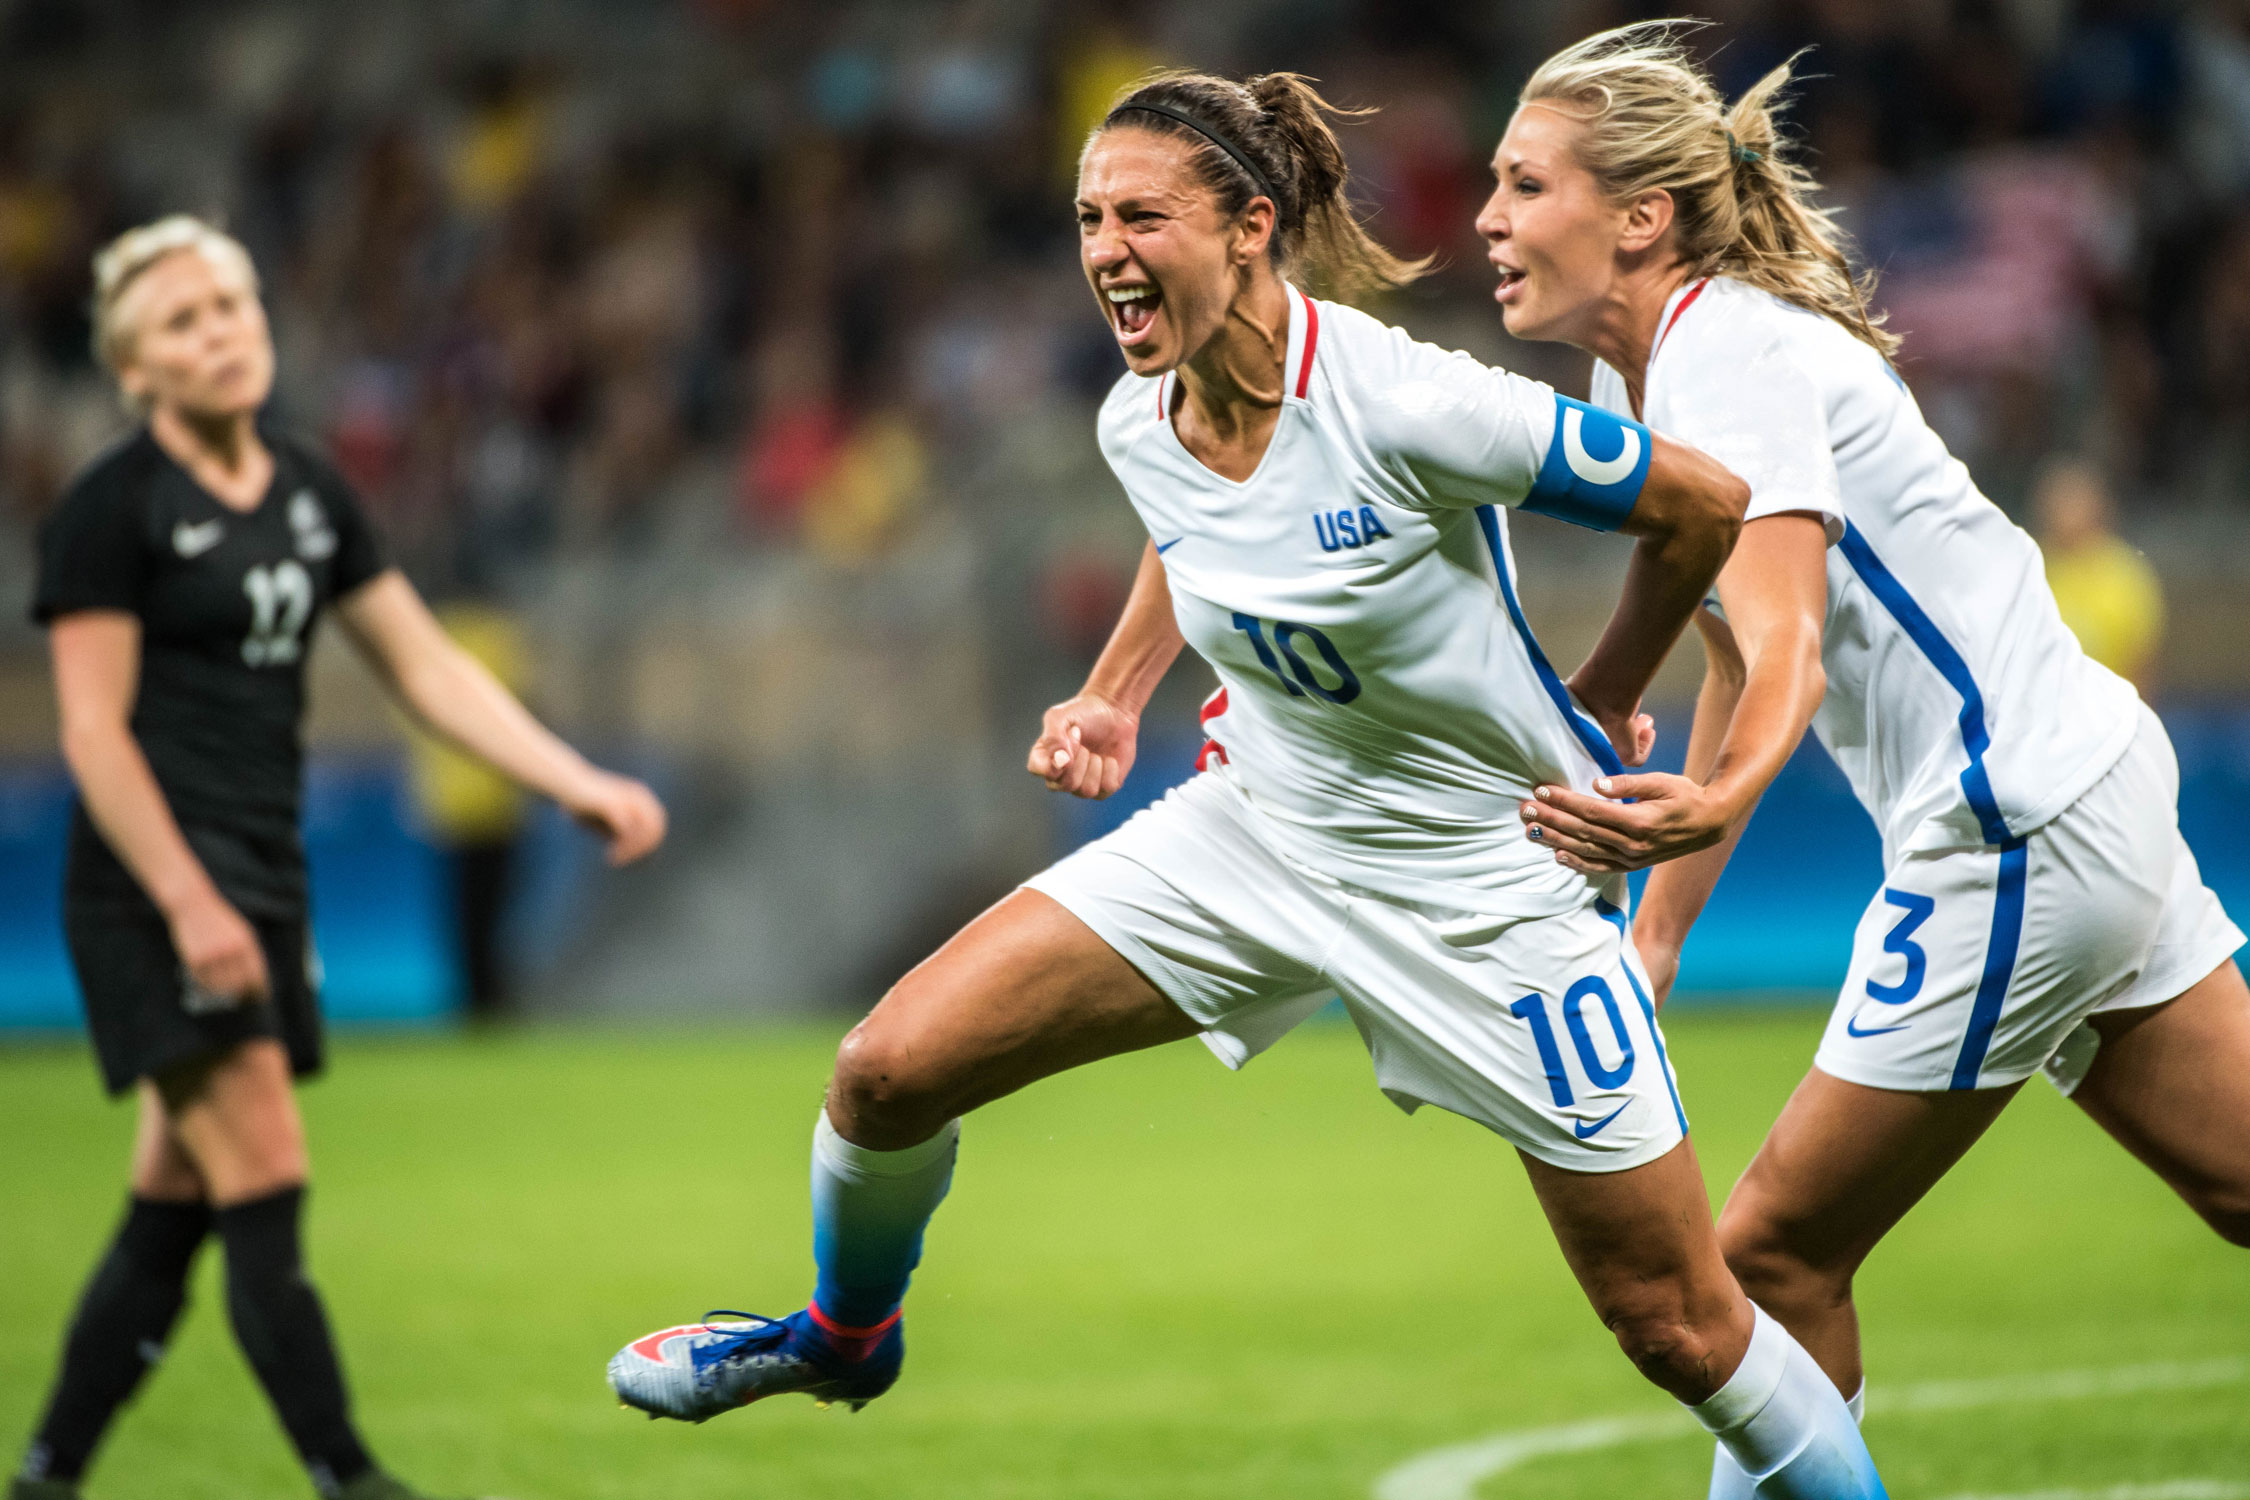 Carli Lloyd celebrates her goal in the USA's 2-0 win over New Zealand in their opening match of group play at the Olympics. Alex Morgan doubled the USA's lead in the second half.